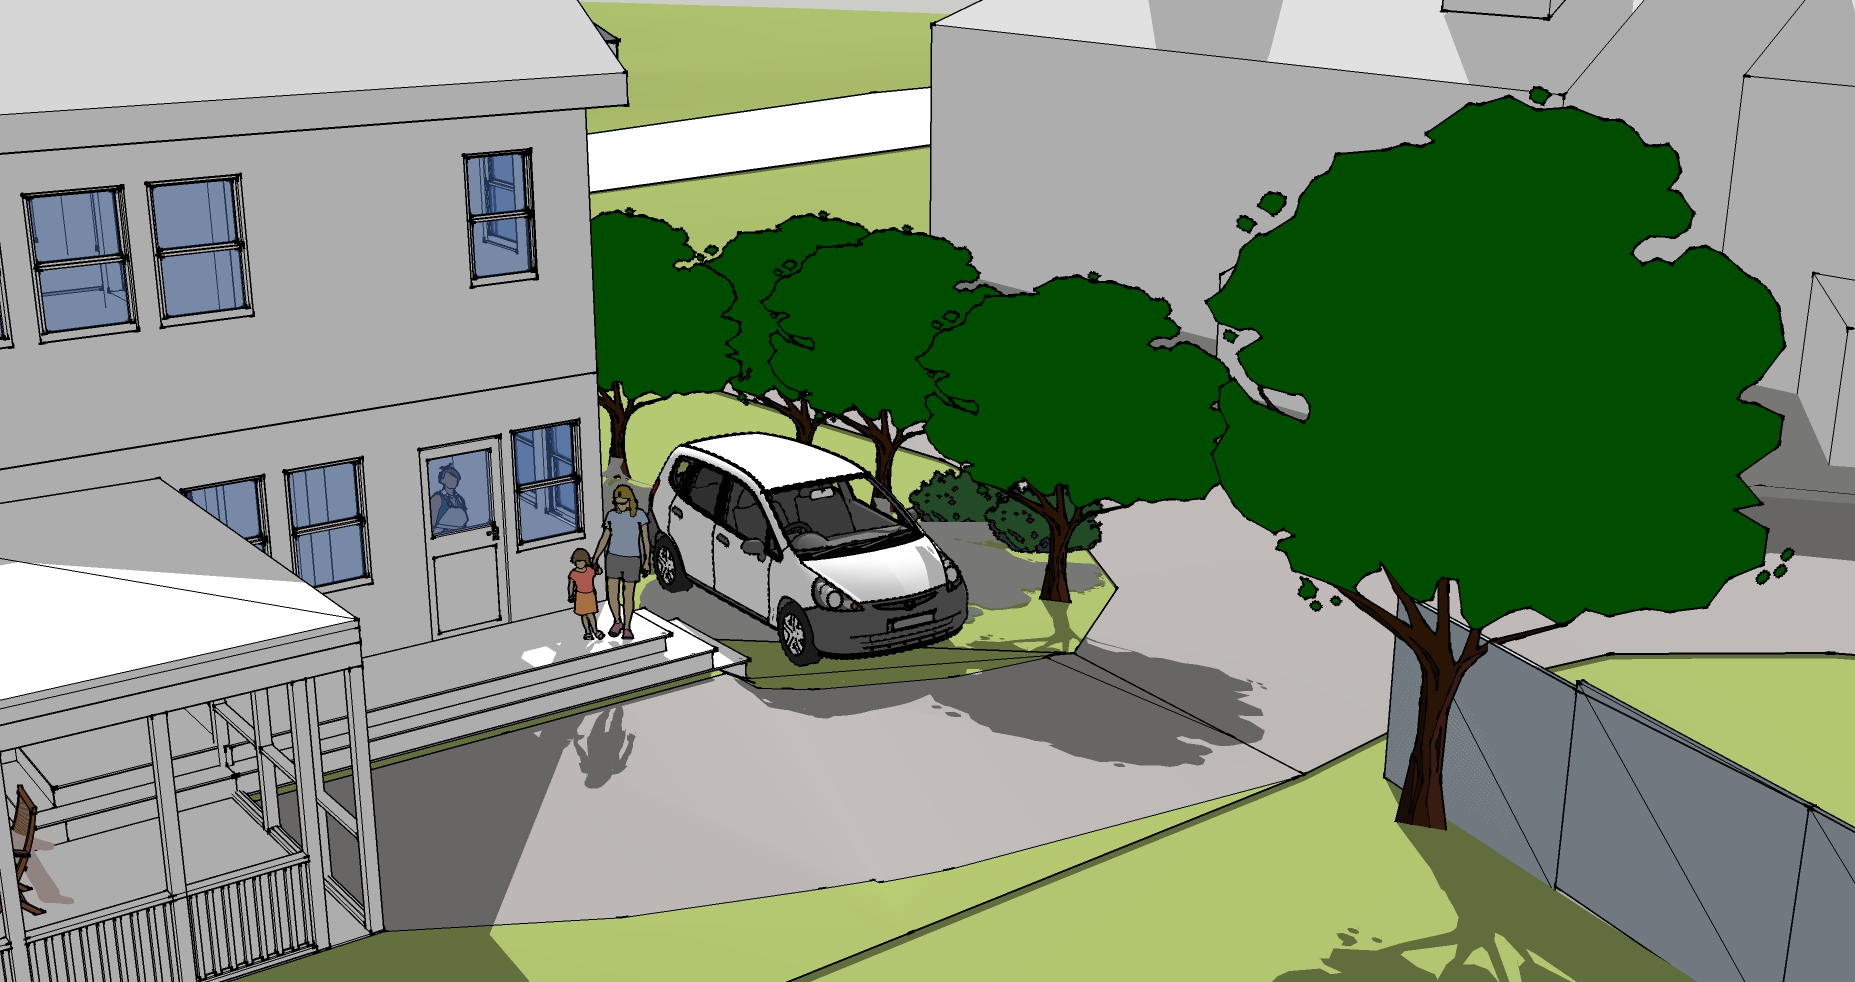 Design idea for parking a car out of sight